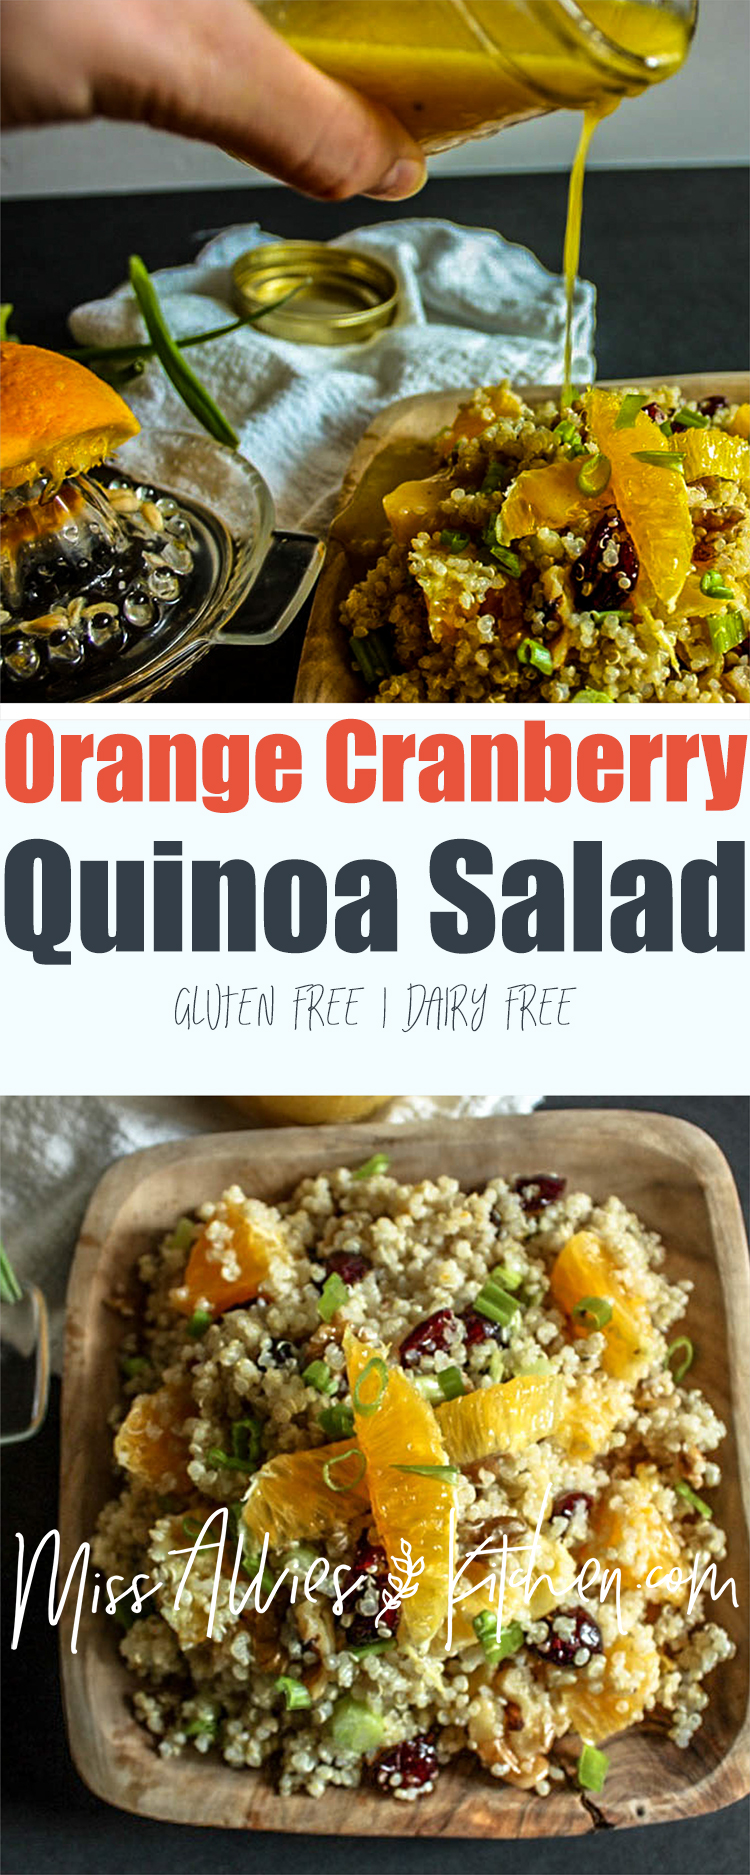 Orange Cranberry Quinoa Salad